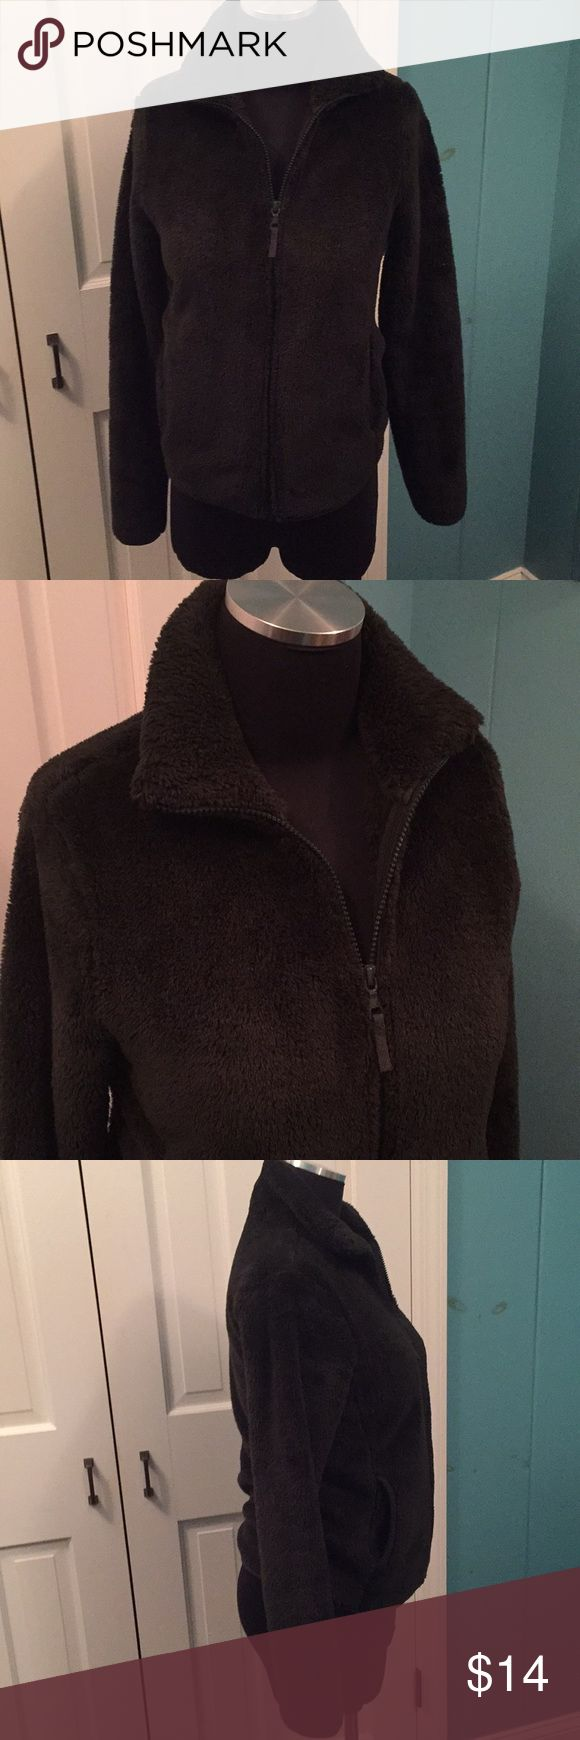 Uniqlo furry comfy zippered jacket I'm very good preowned condition  Looks black but it's a very dark green Size small Full zip, slash pockets. Warm and cozy. Uniqlo Jackets & Coats